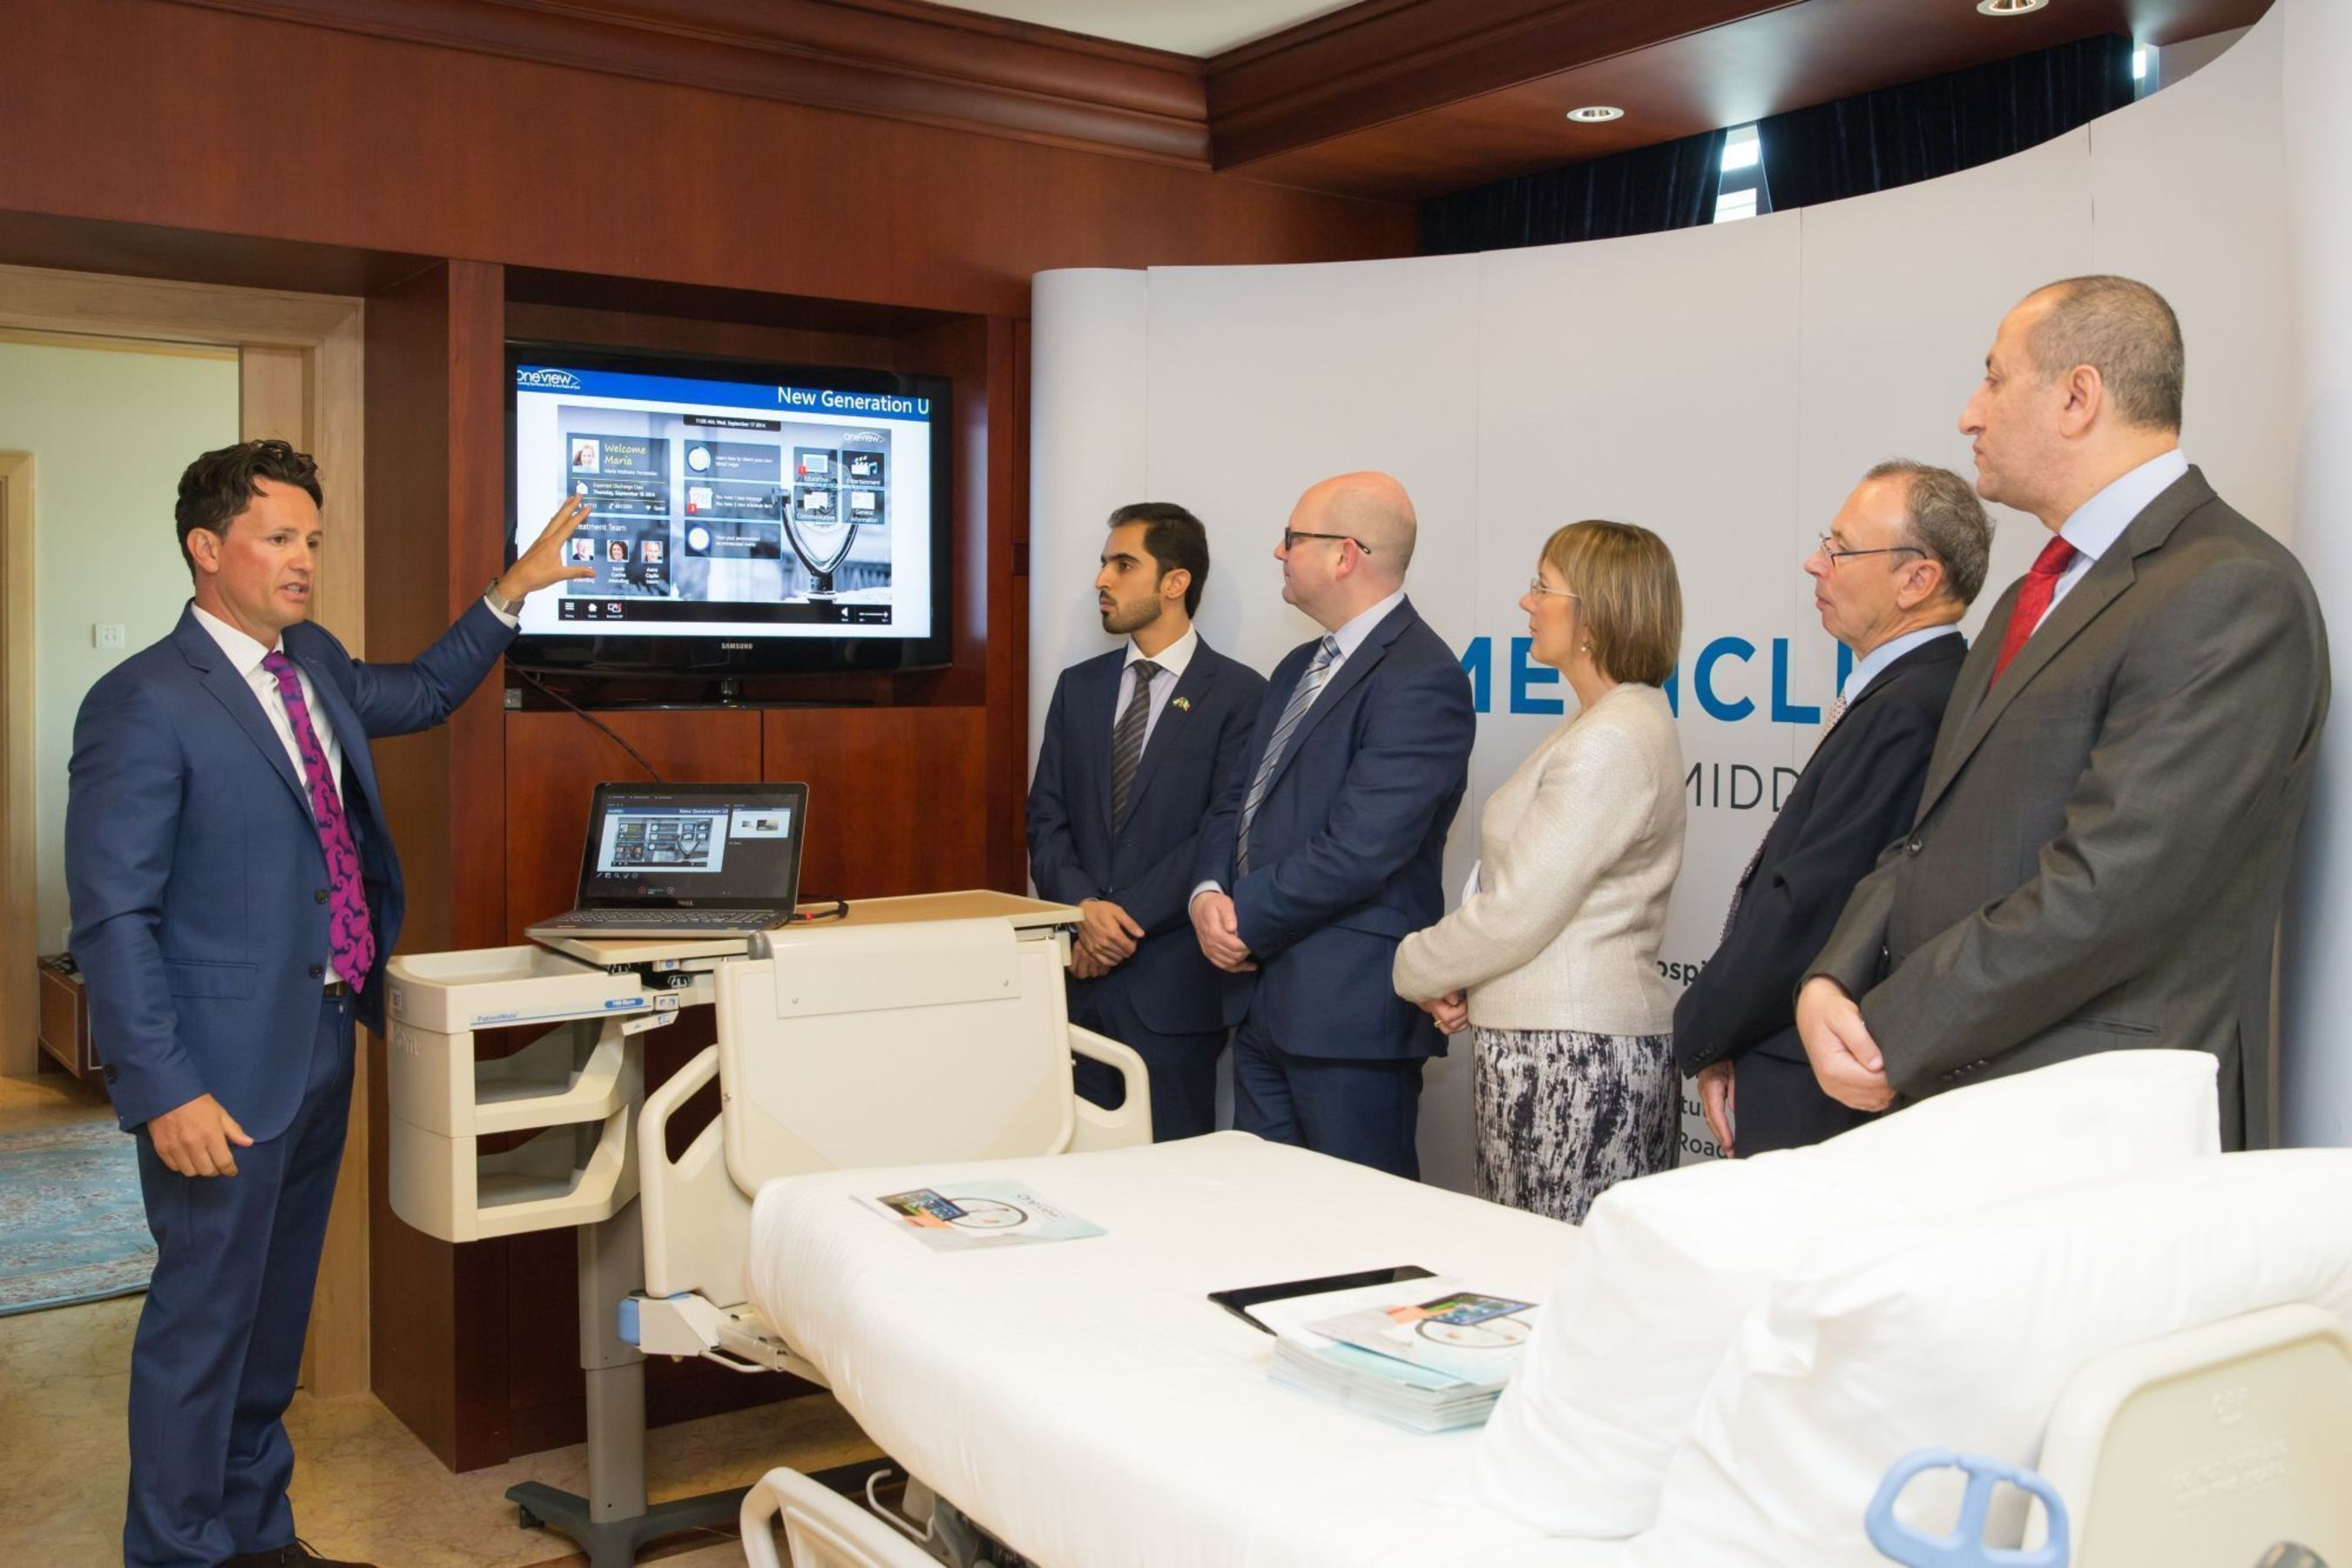 Oneviewâeuro(TM)s Patient Engagement and Clinical Workflow Solution is being deployed at Mediclinic City Hospital and Mediclinic Welcare Hospital (PRNewsFoto/Oneview Healthcare)